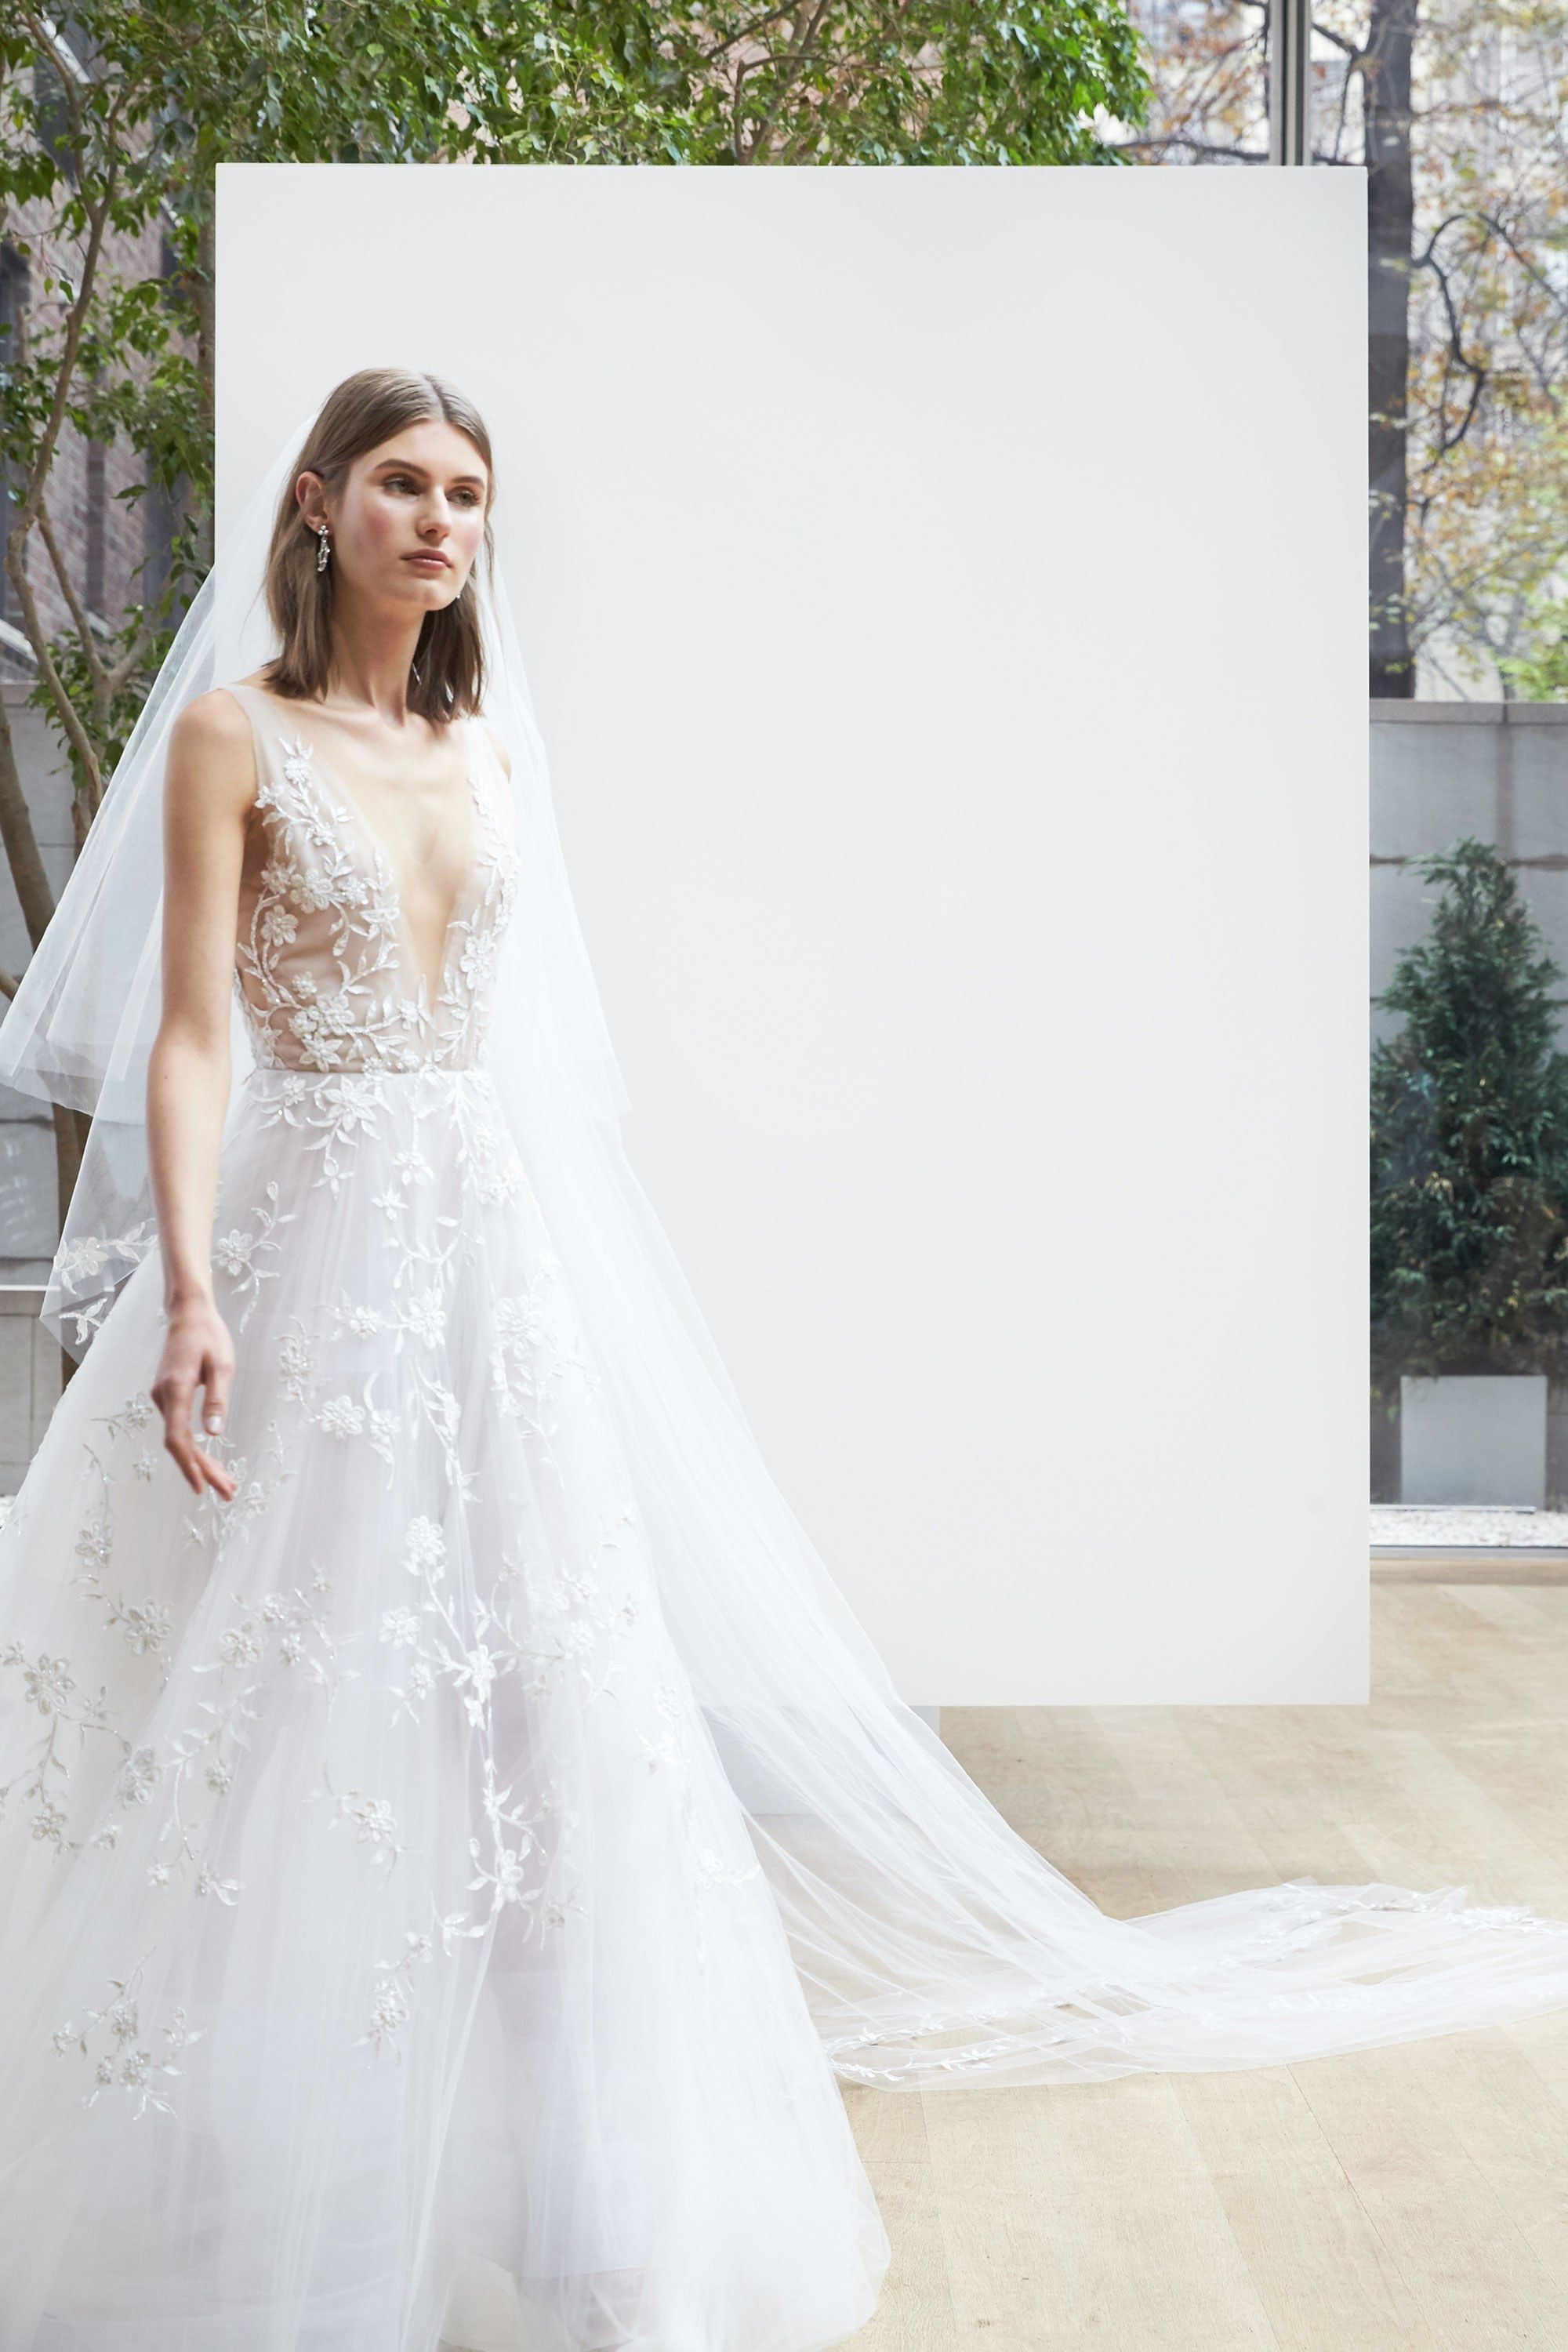 Oscar de la renta bridal spring 2018 fashion show oscar for Where to buy oscar de la renta wedding dress